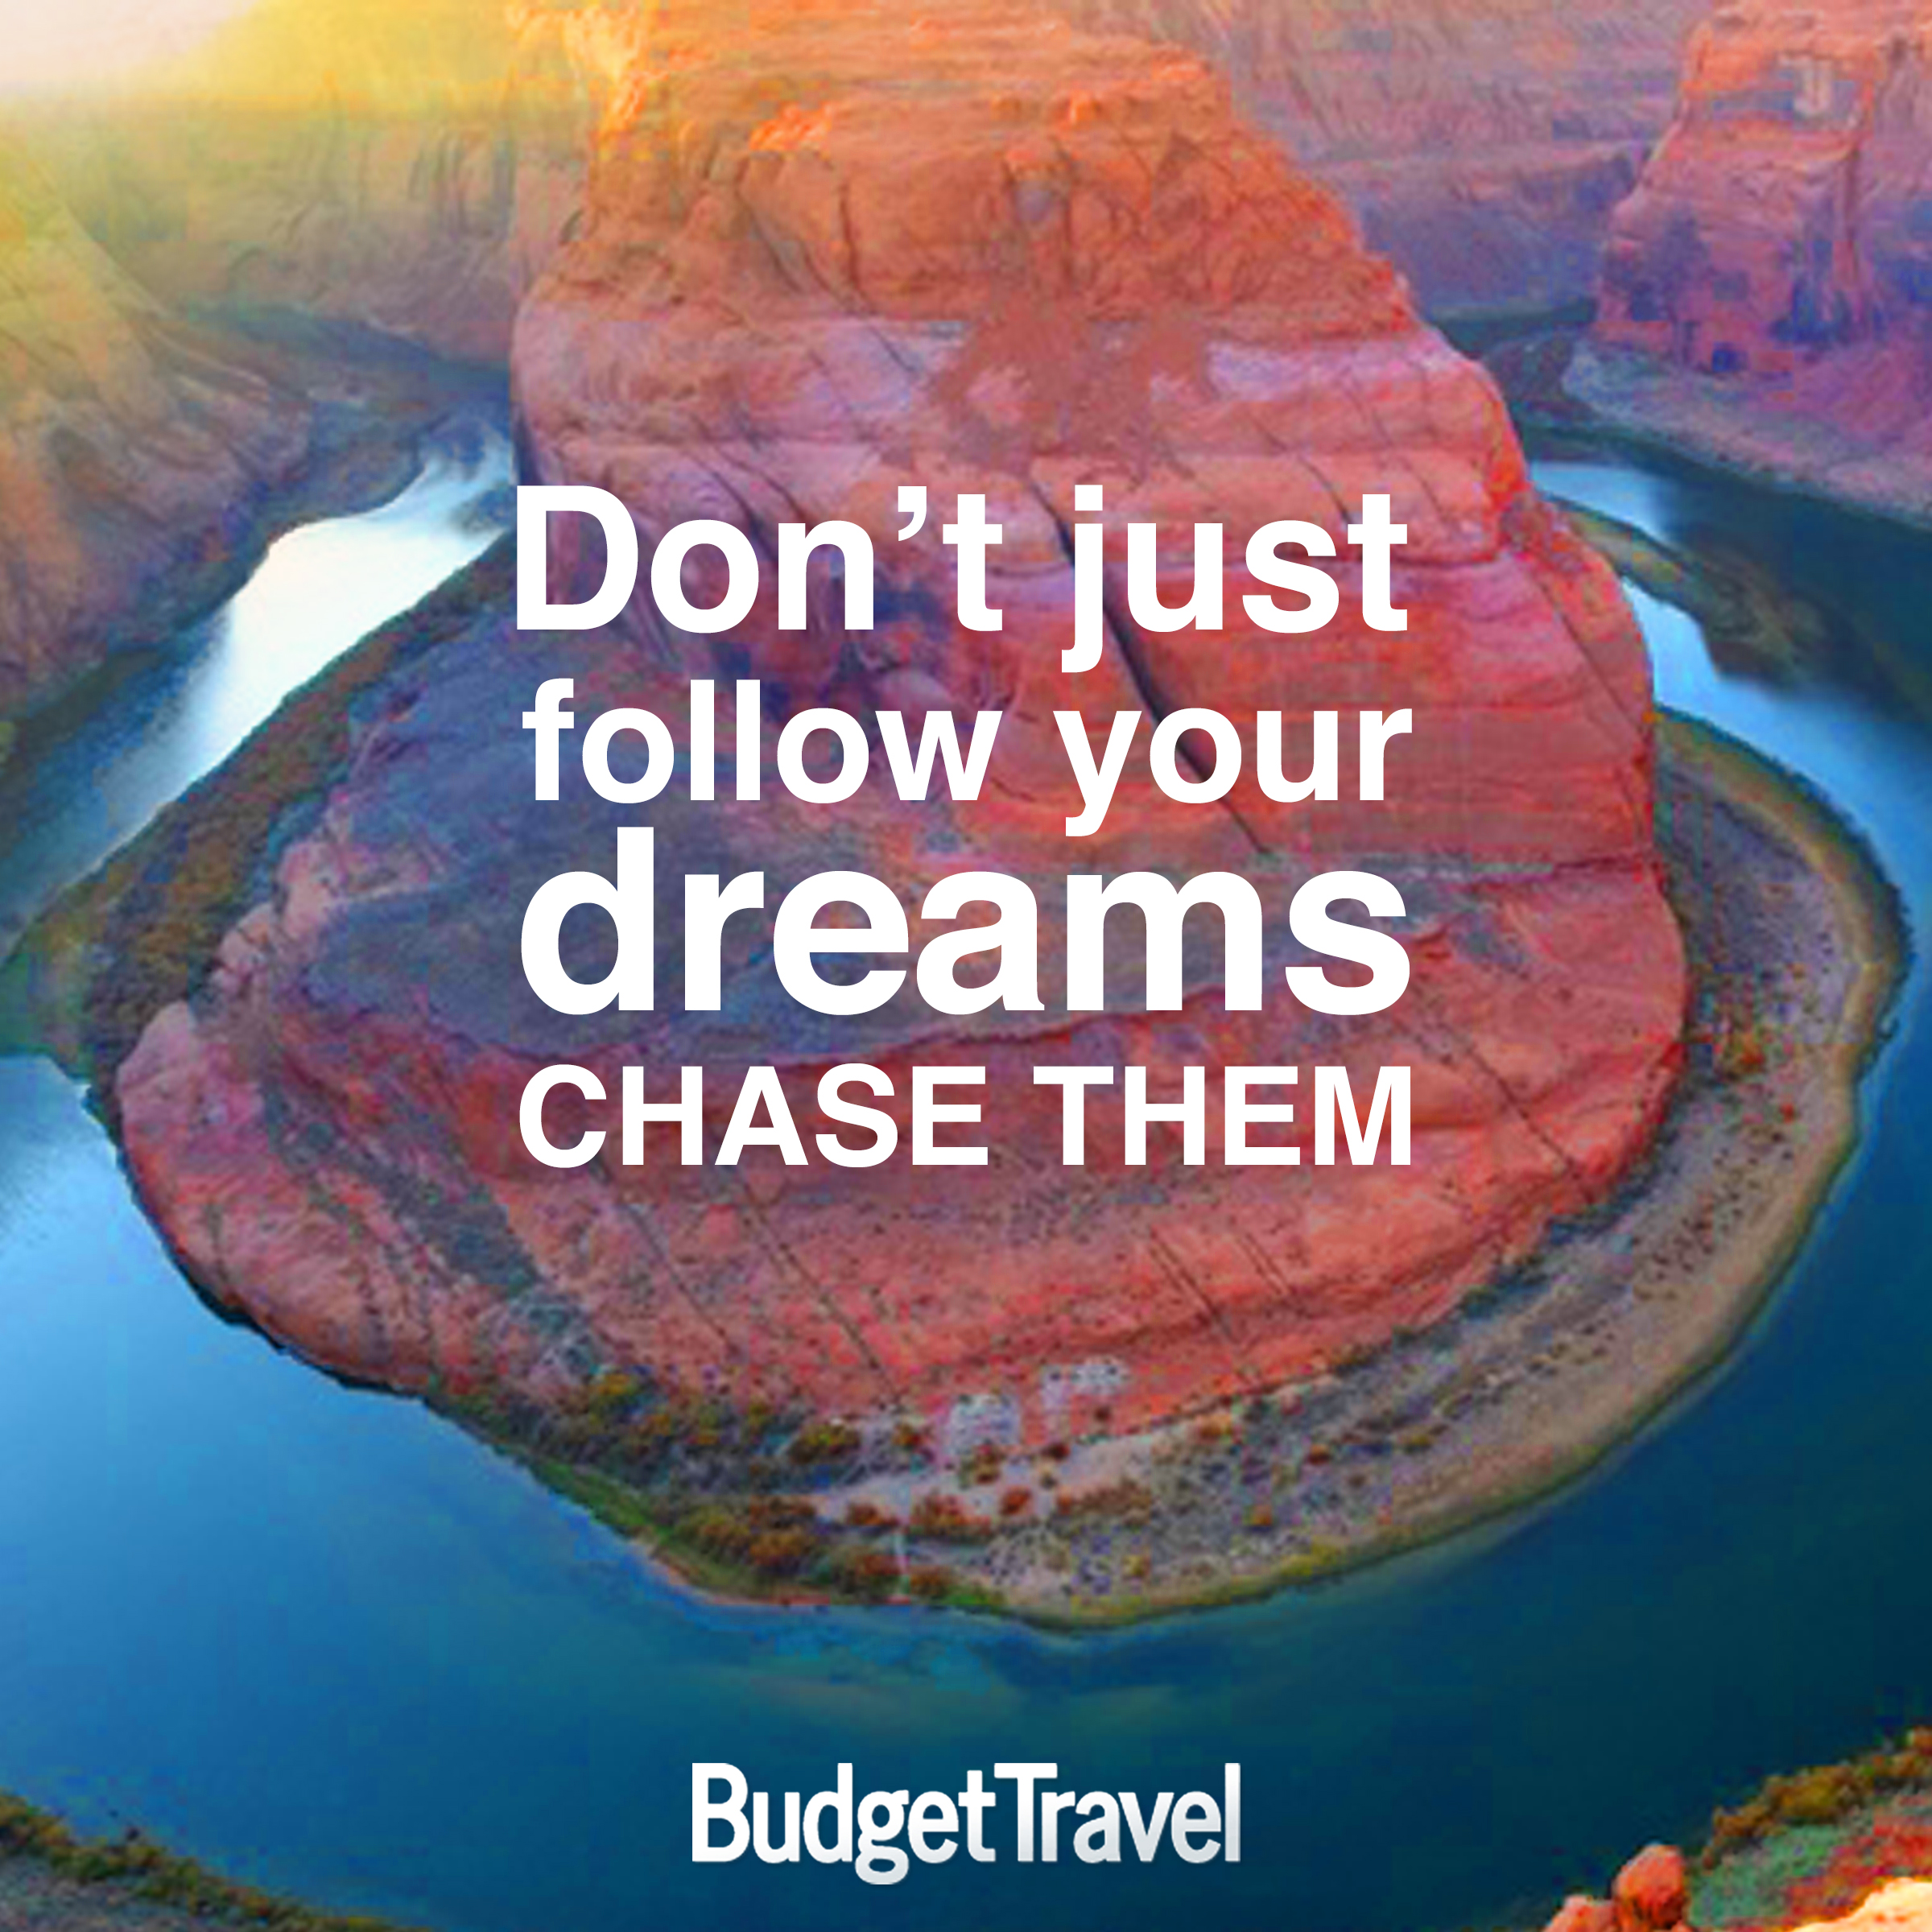 dont-just-follow-your-dreams-chase-them-travel-quote-472015-19414_original